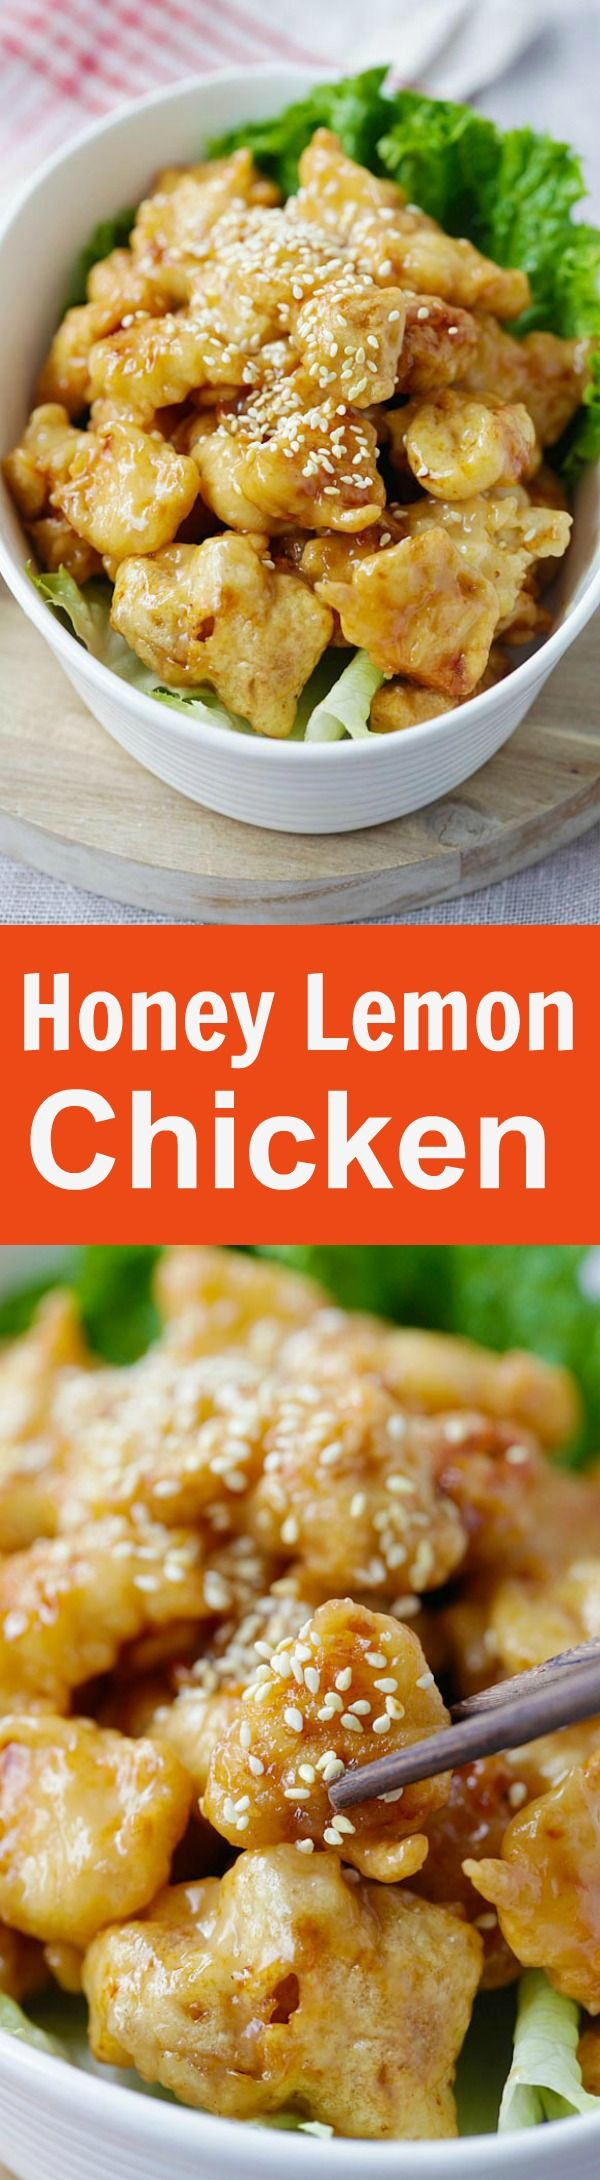 Honey Lemon Chicken – crispy chicken with AMAZING honey lemon sauce. Quick and easy recipe that anyone can make at home | rasamalaysia.com